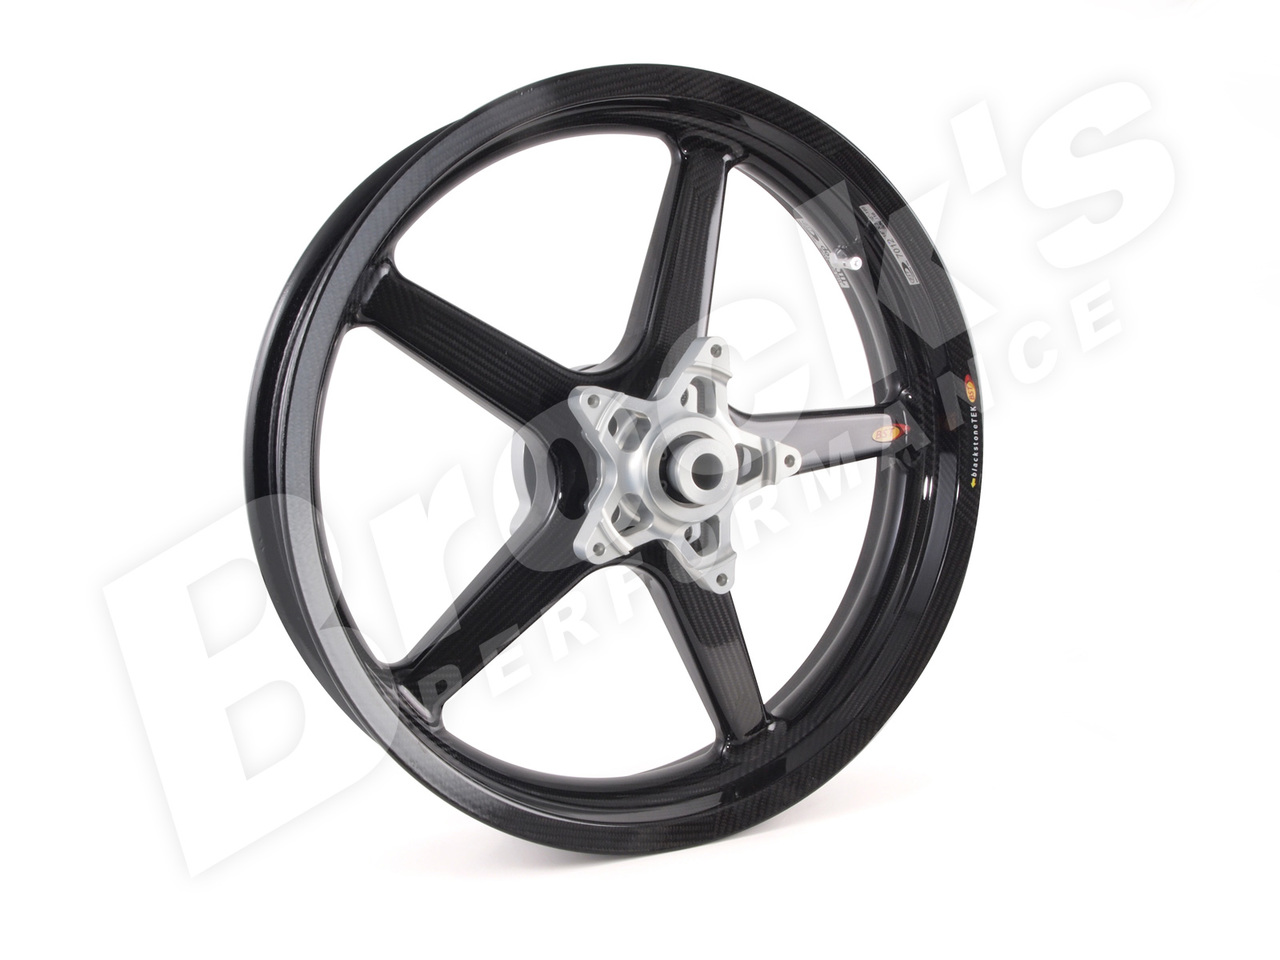 Bst Front Wheel 35 X 18 For Yamaha Vmax 09 Brocks Performance Fuel Filter